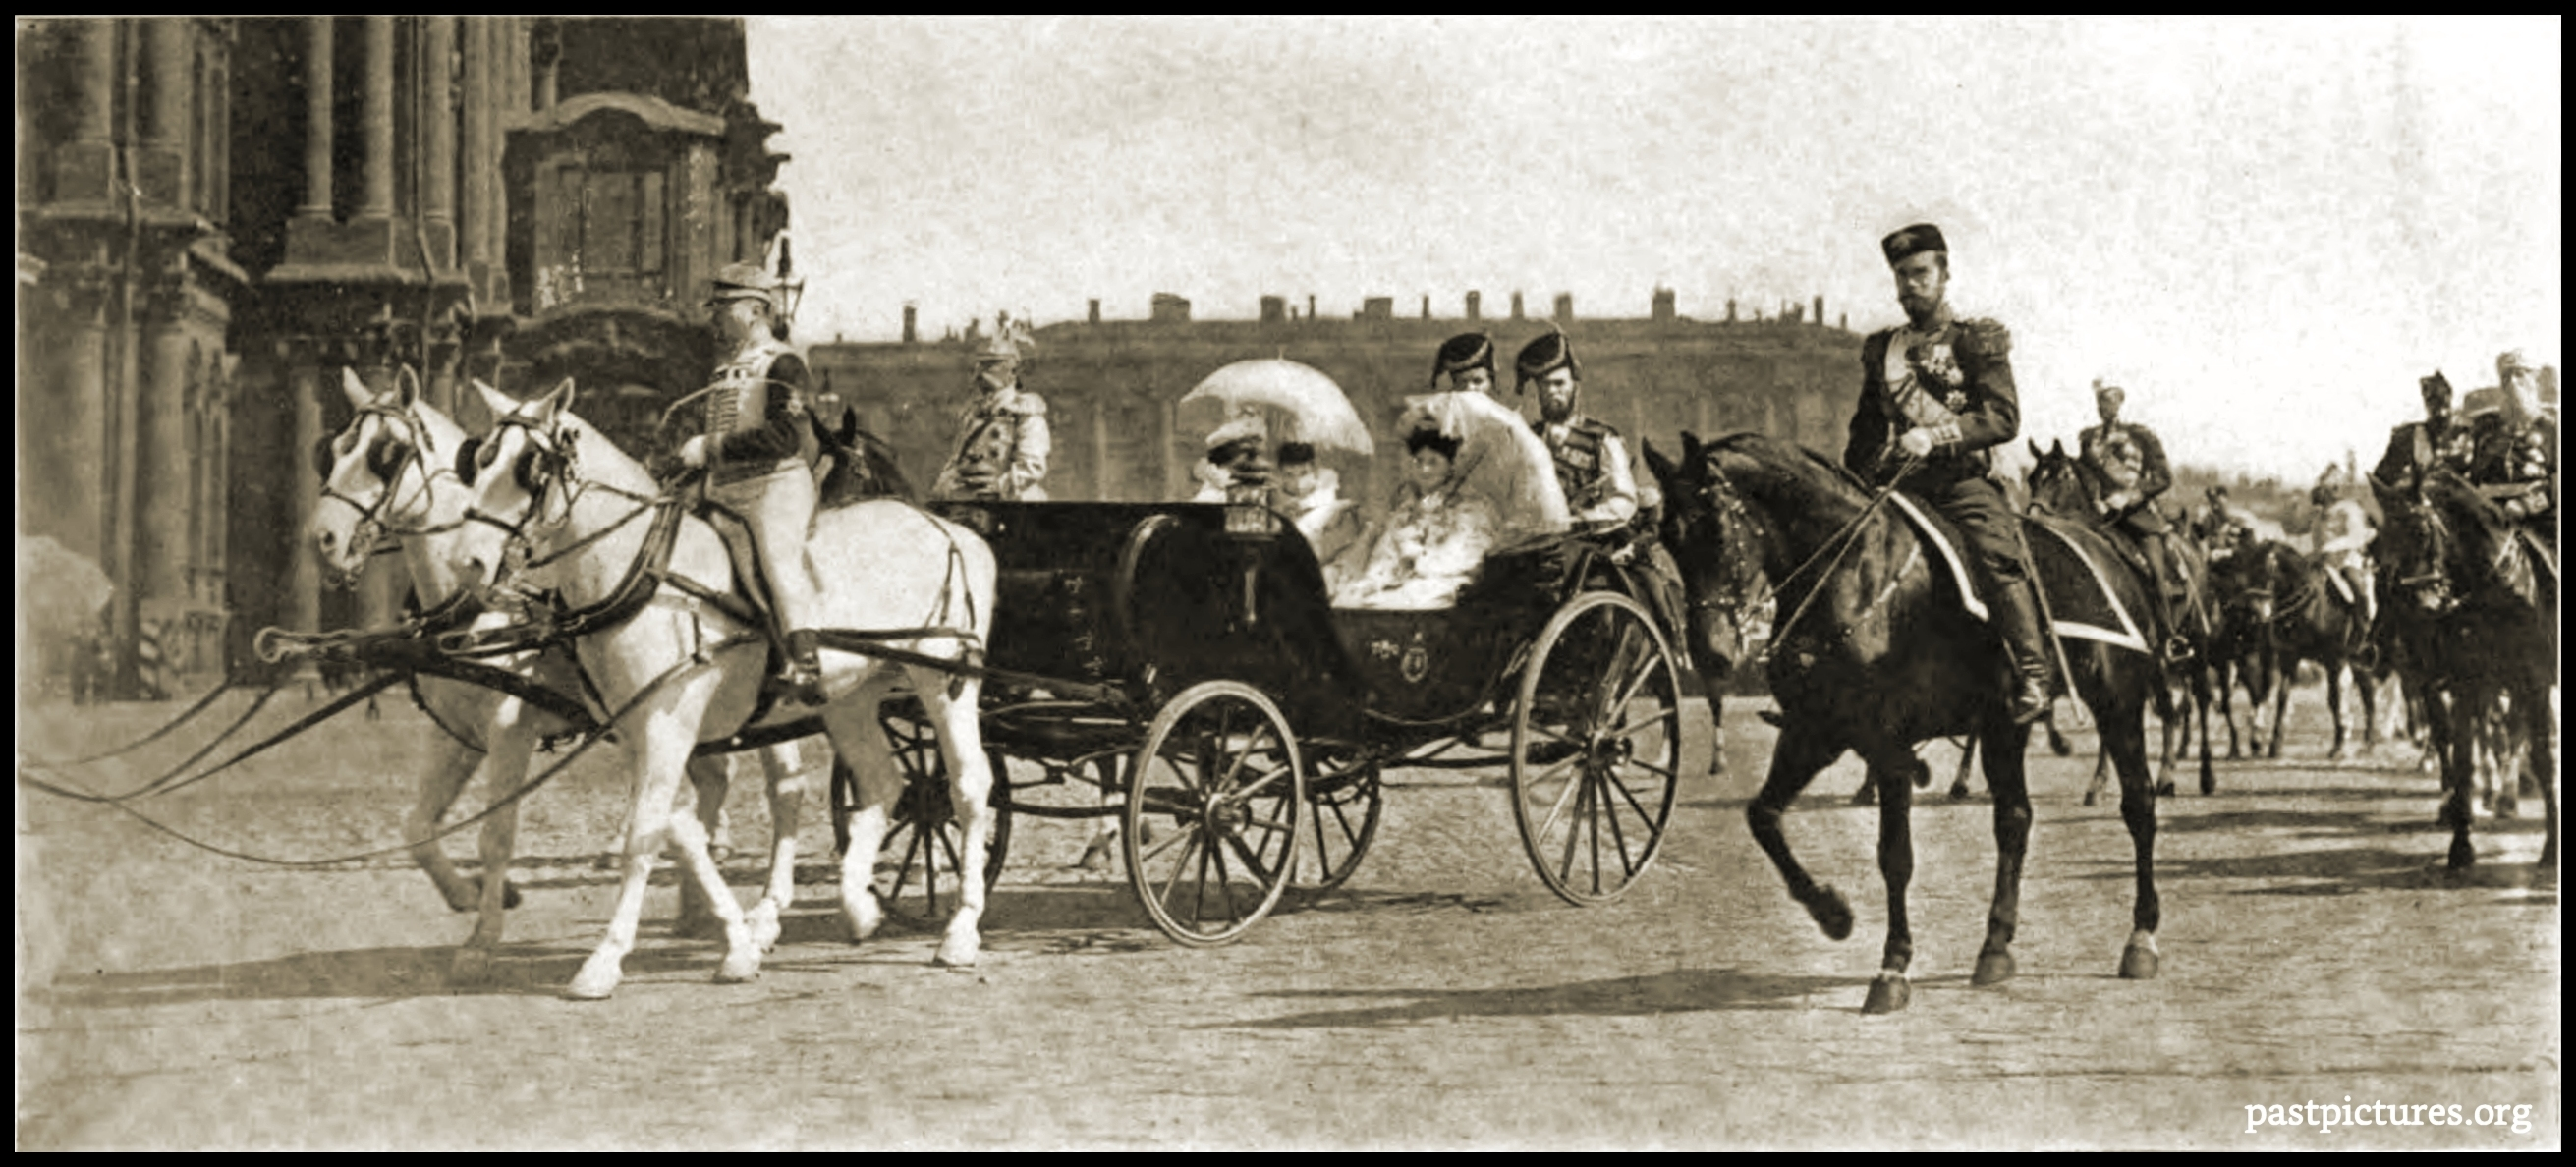 The Czar and Czarina in St. Petersburg (Russia) about 1905